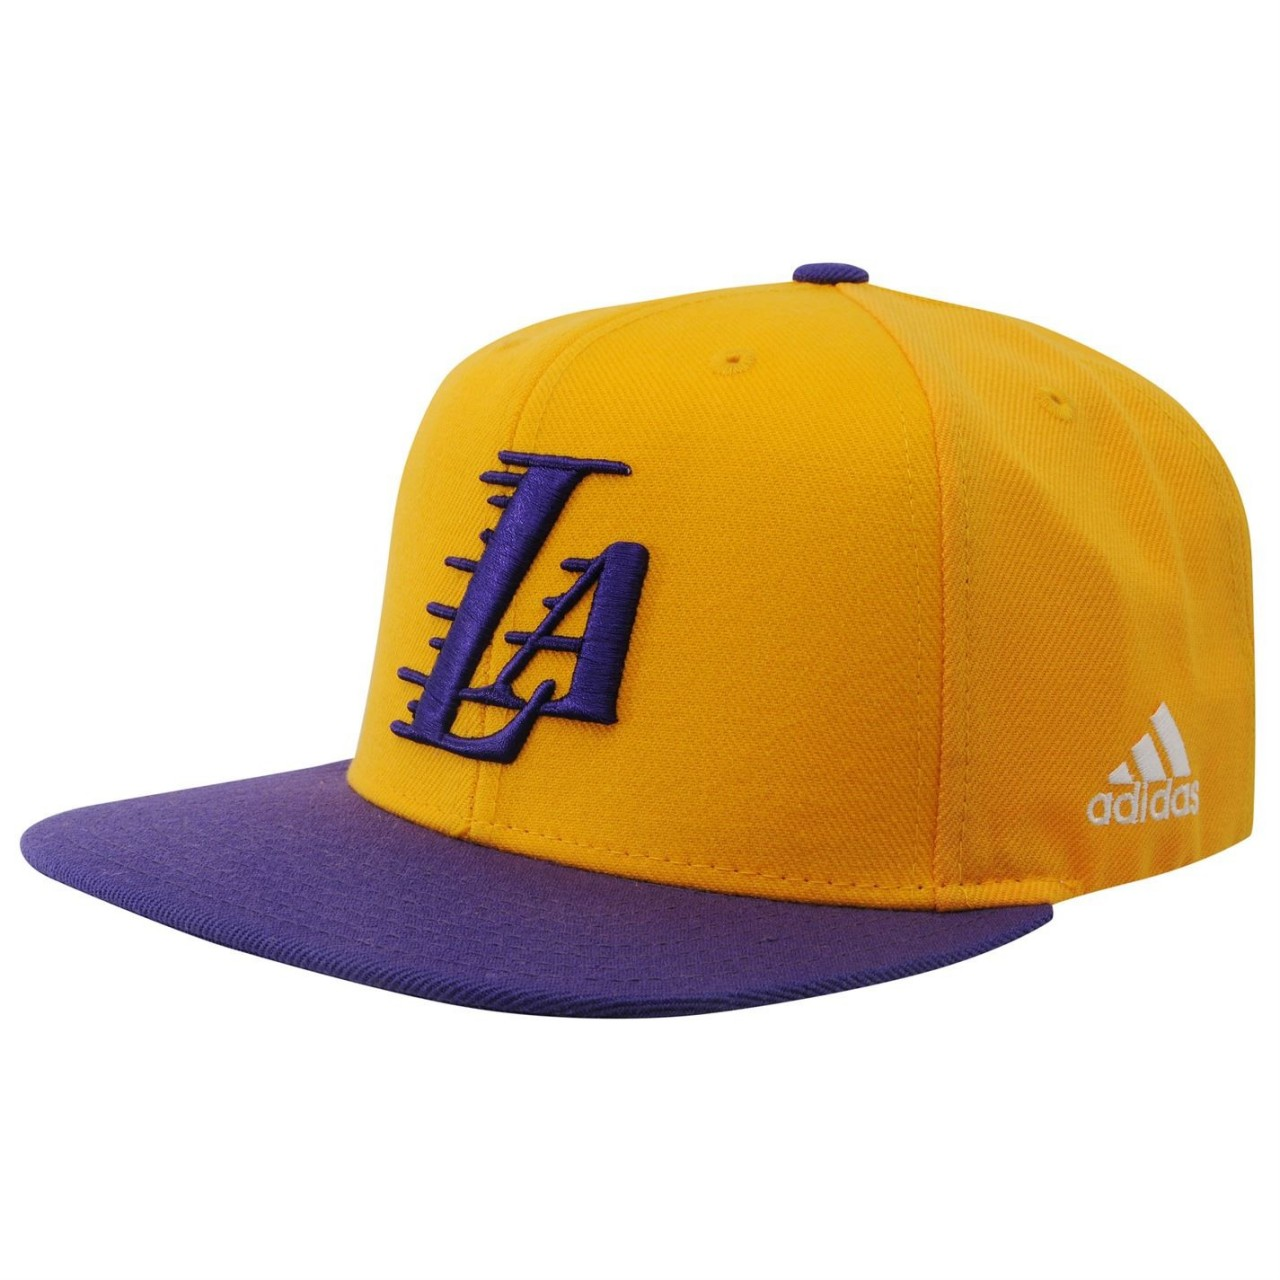 adidas NBA Cap Mens - Lakers